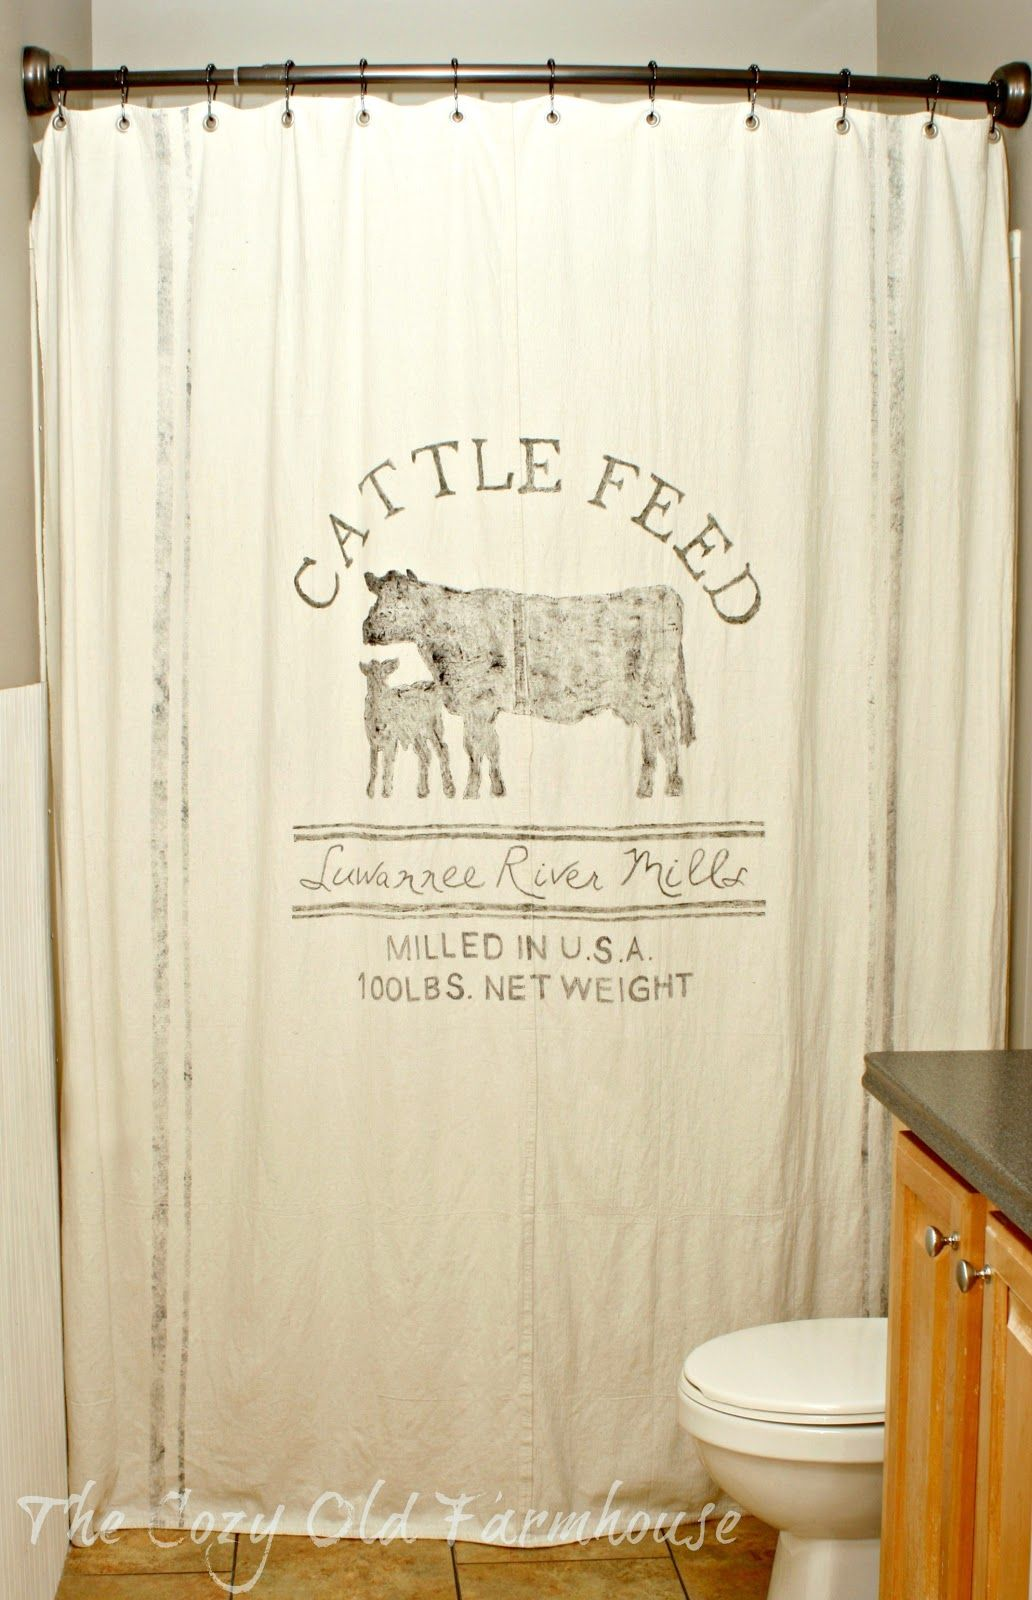 Diy shower curtain made from drop cloth perfect for my farmhouse bathroom